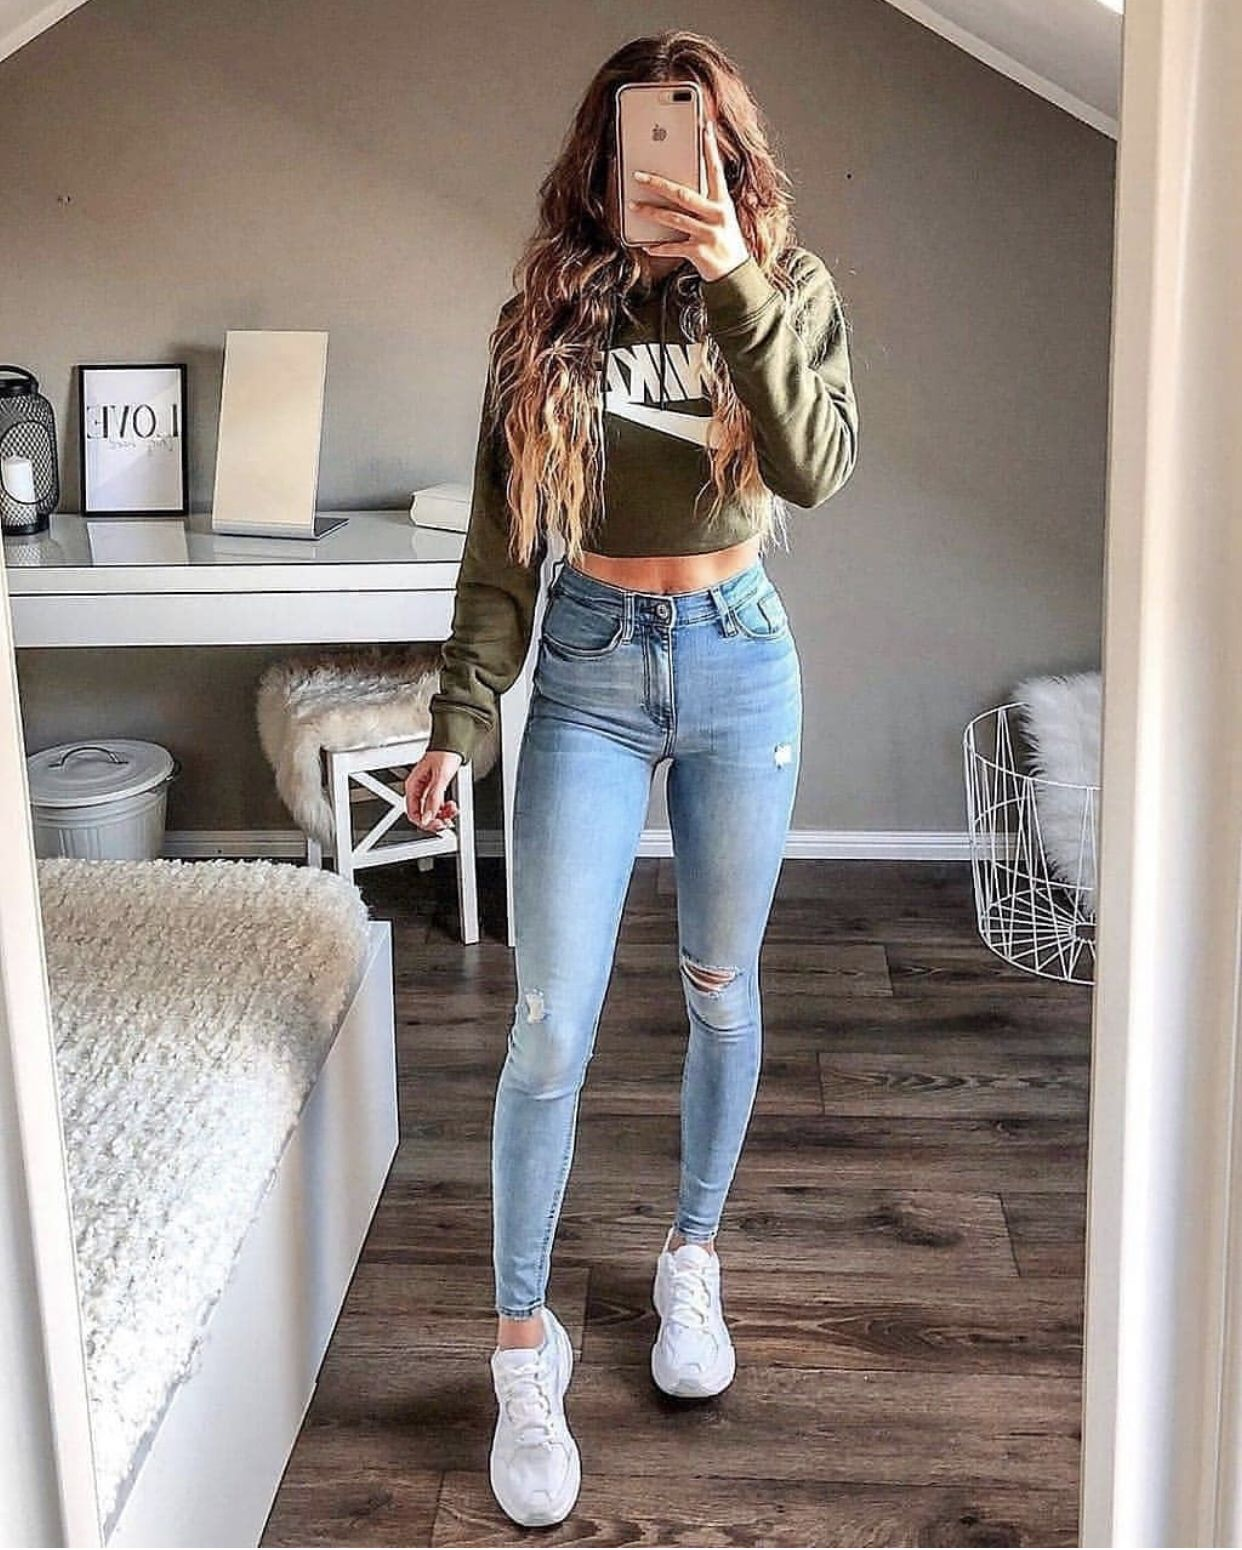 Pin by Mary on CUTE CLOTHES  Pinterest outfits, Summer fashion